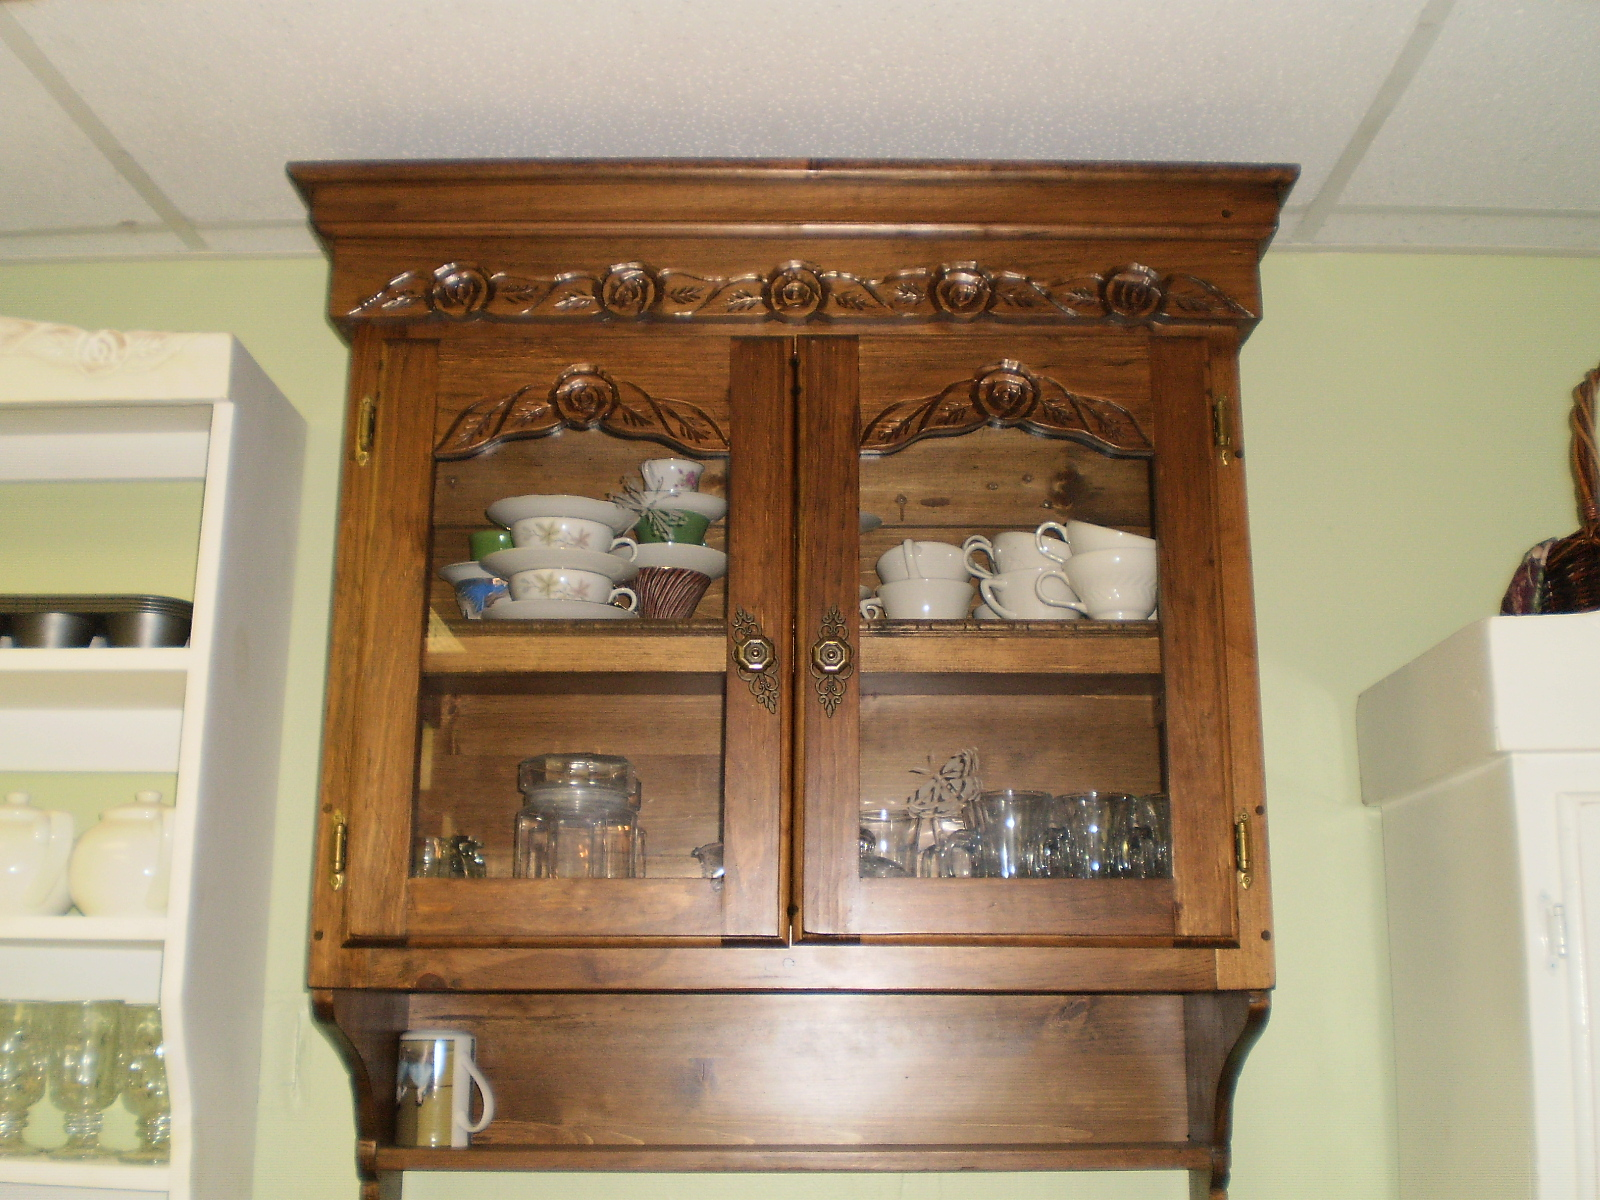 eugenie s woodworking blog cabinets or cupboards with extravagant colorful kitchen cupboard doors artistic